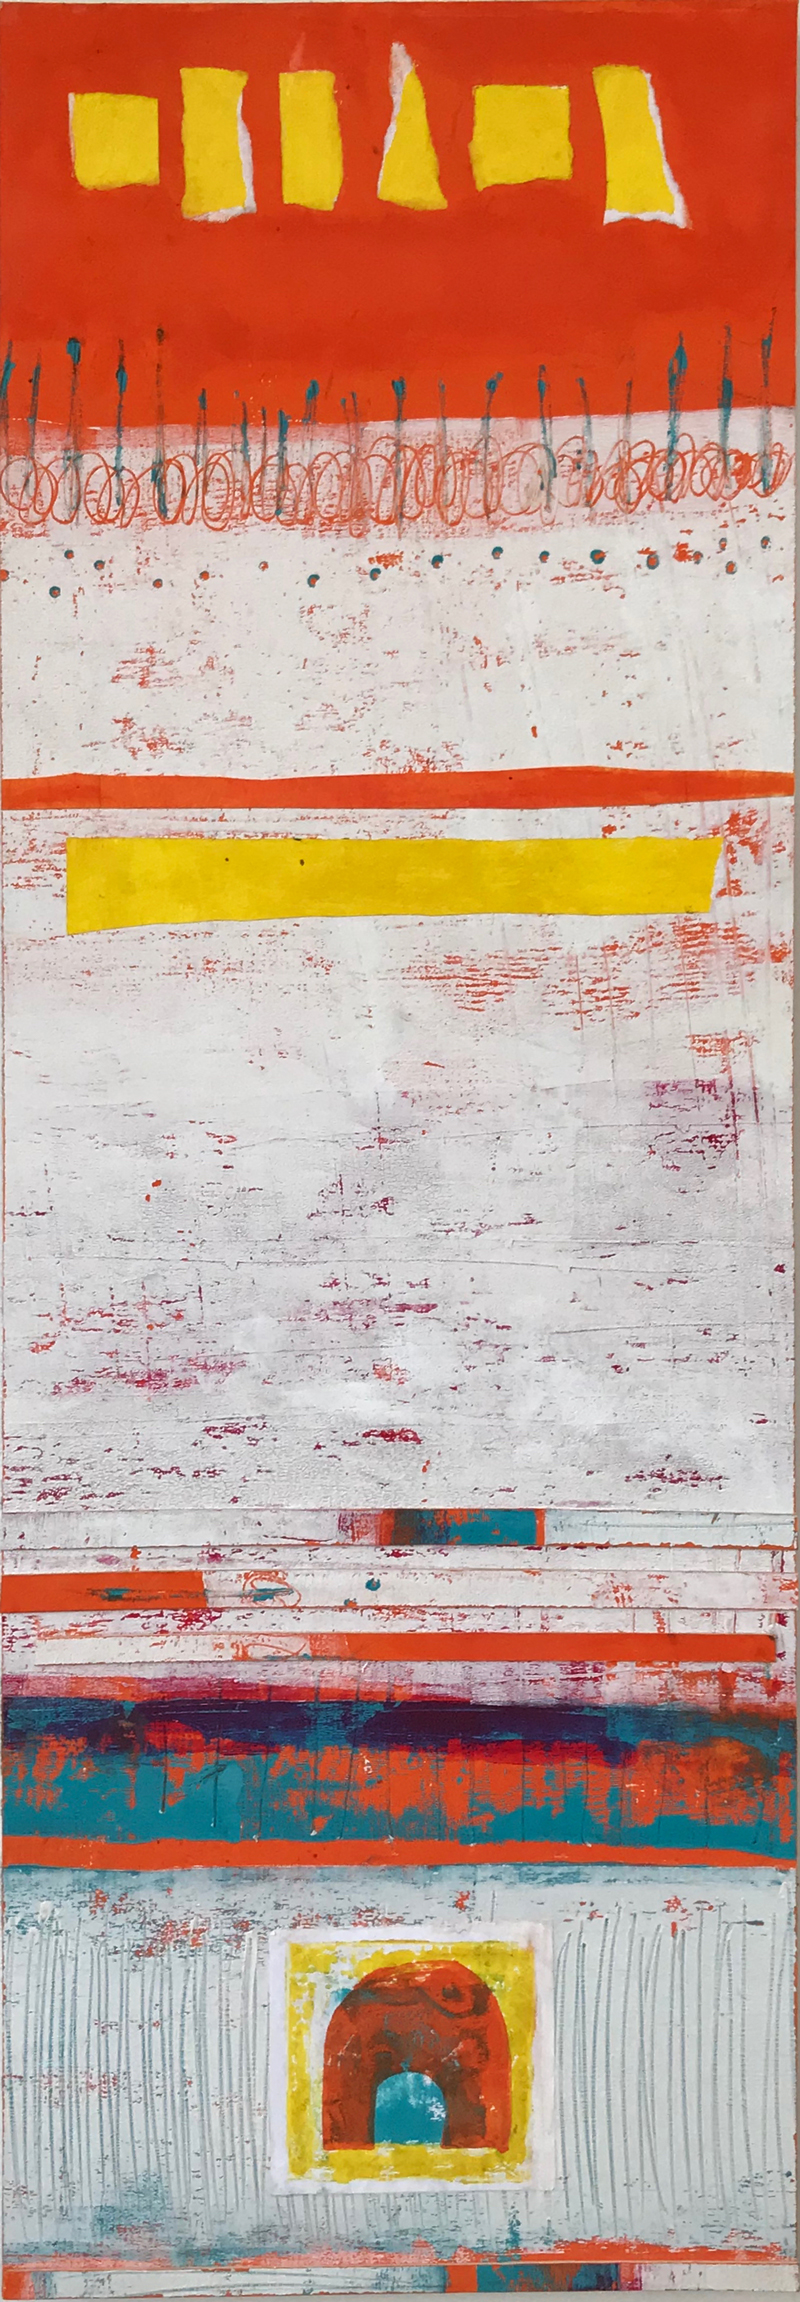 White with Orange 2 by Suzanne Bethell